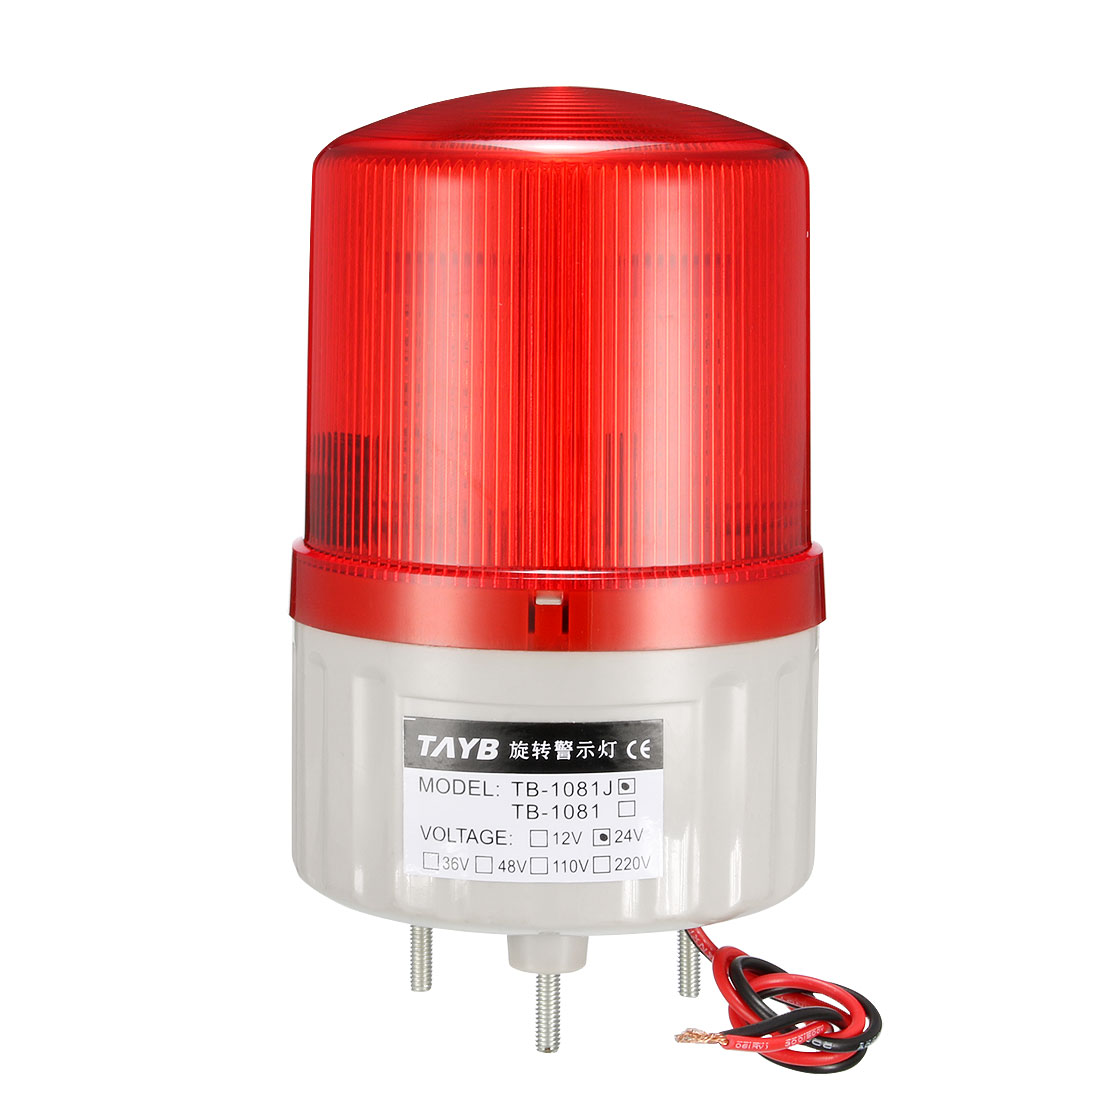 LED Warning Light Bright Industrial Alarm Lamp Buzzer 90dB DC24V Red TB-1081J